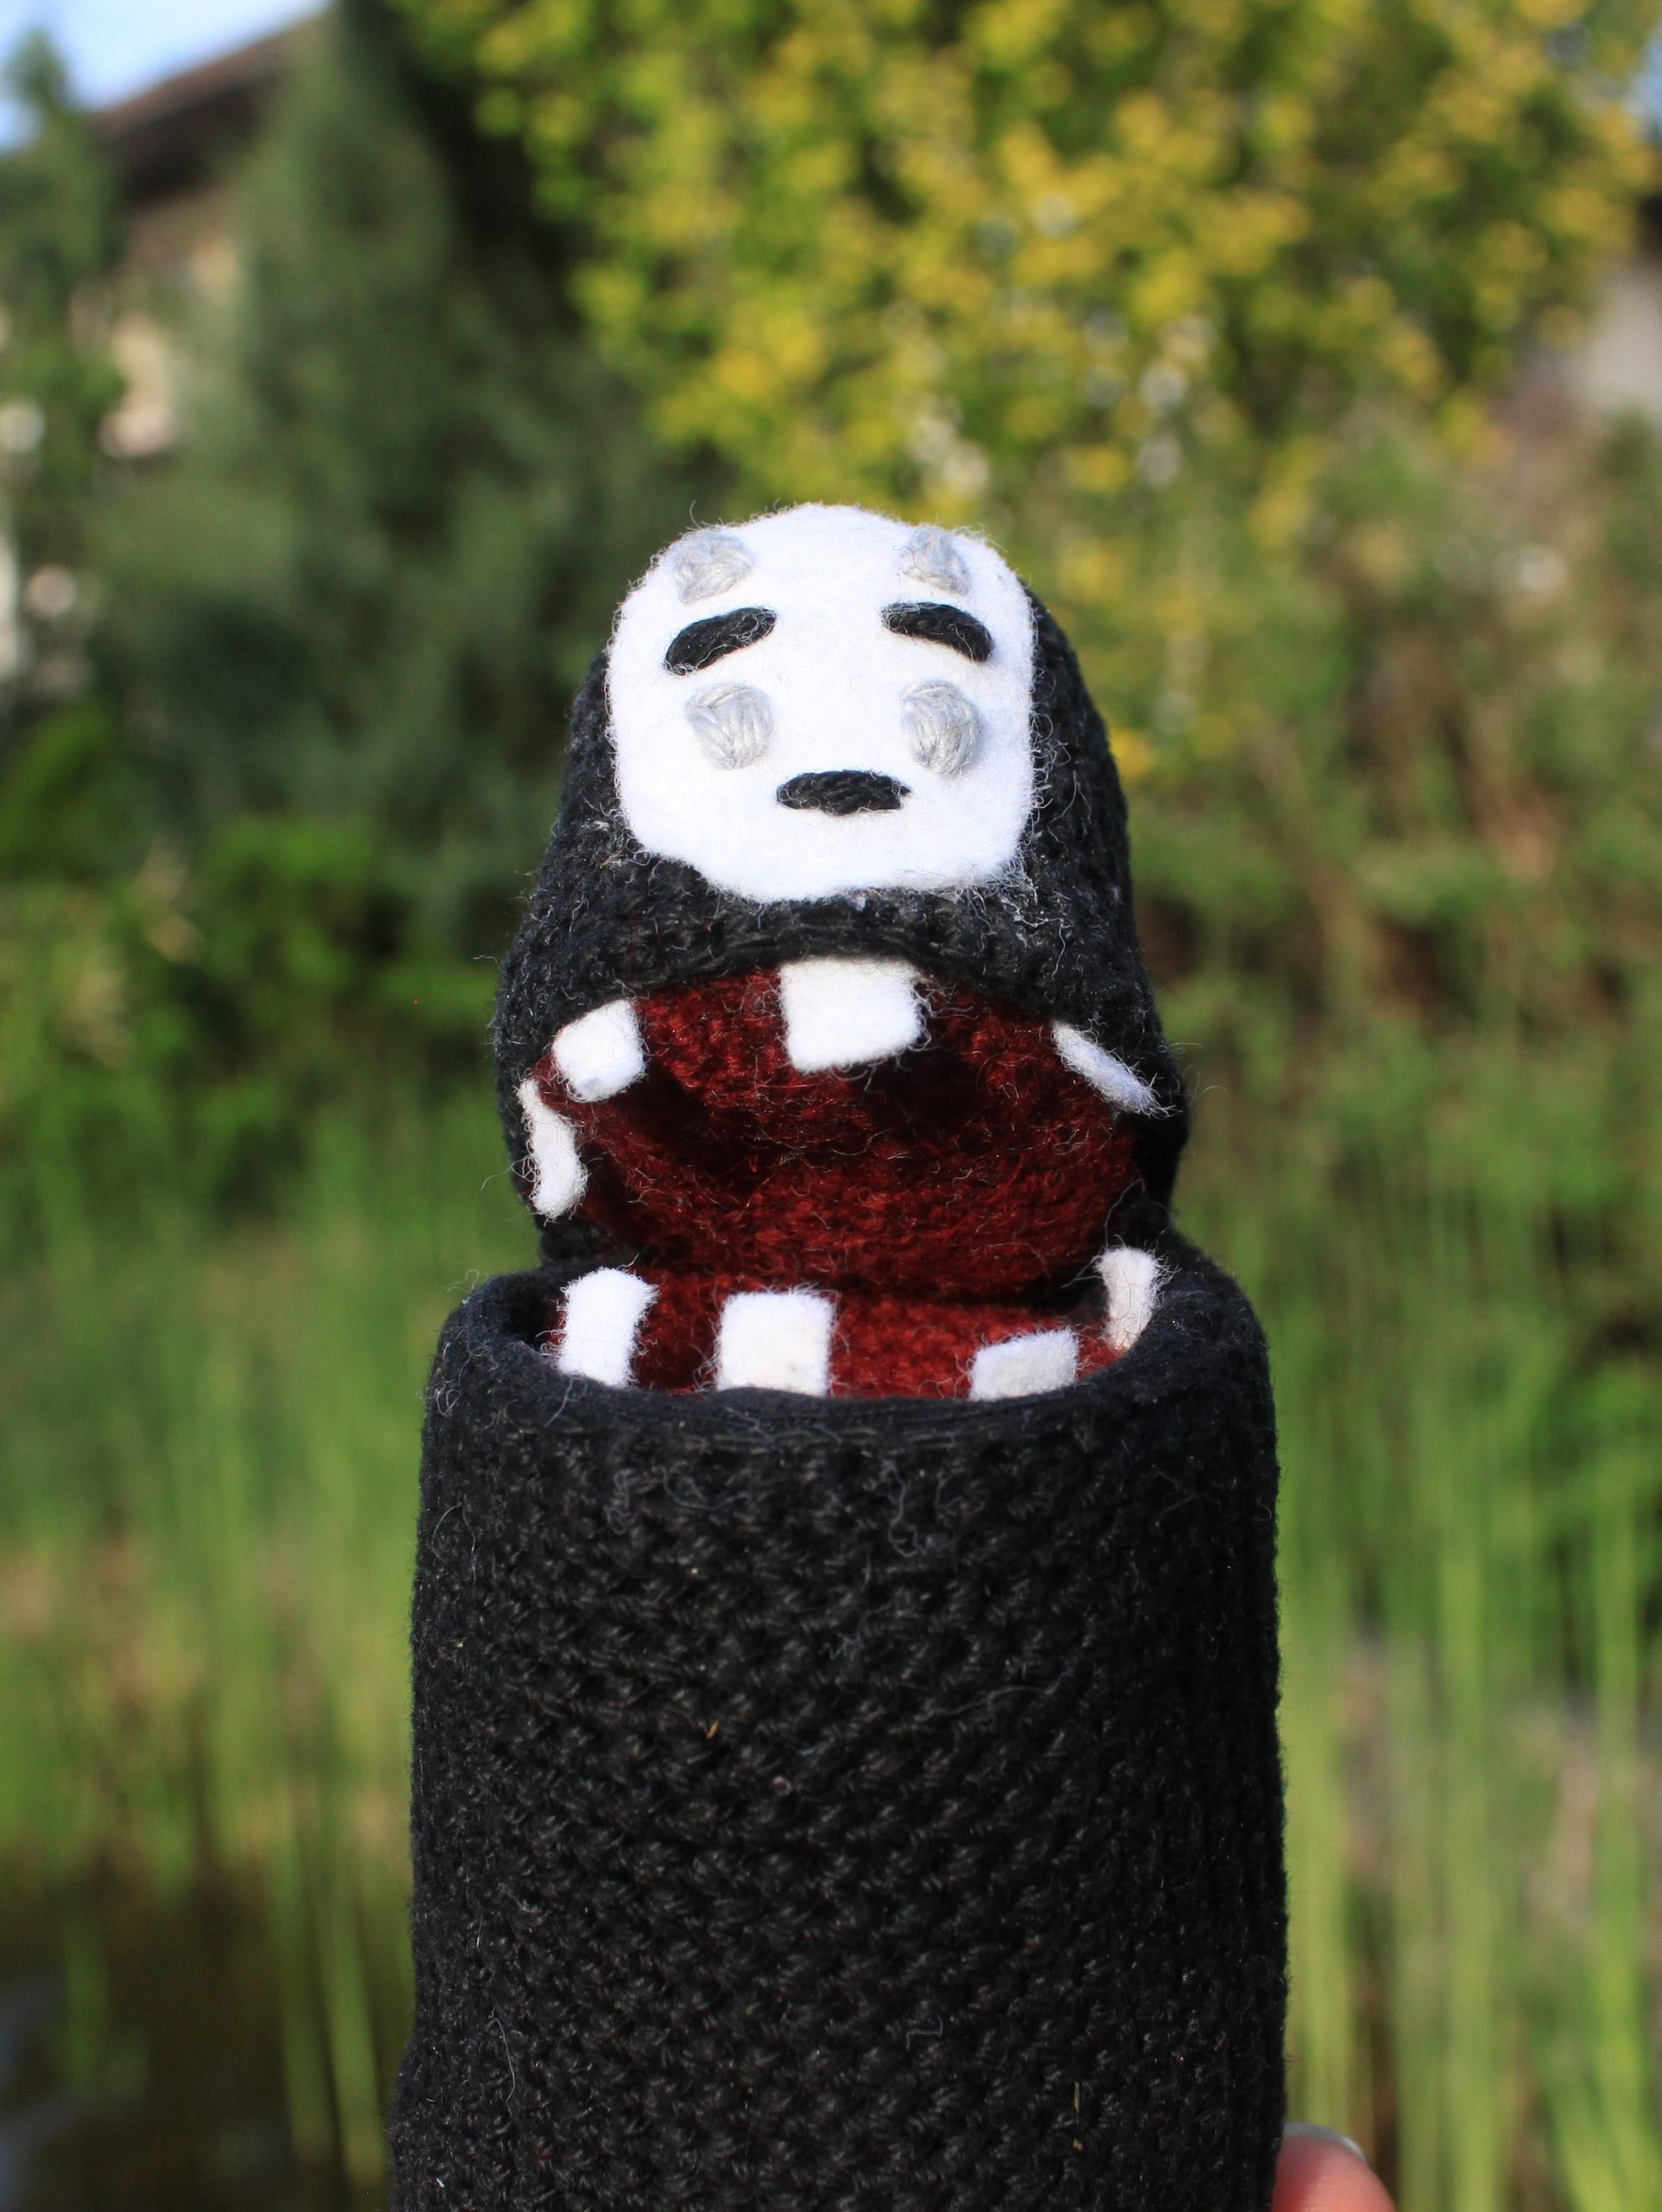 No-Face from Spirited Away Crochet Amigurumi Figure with Secret Storage